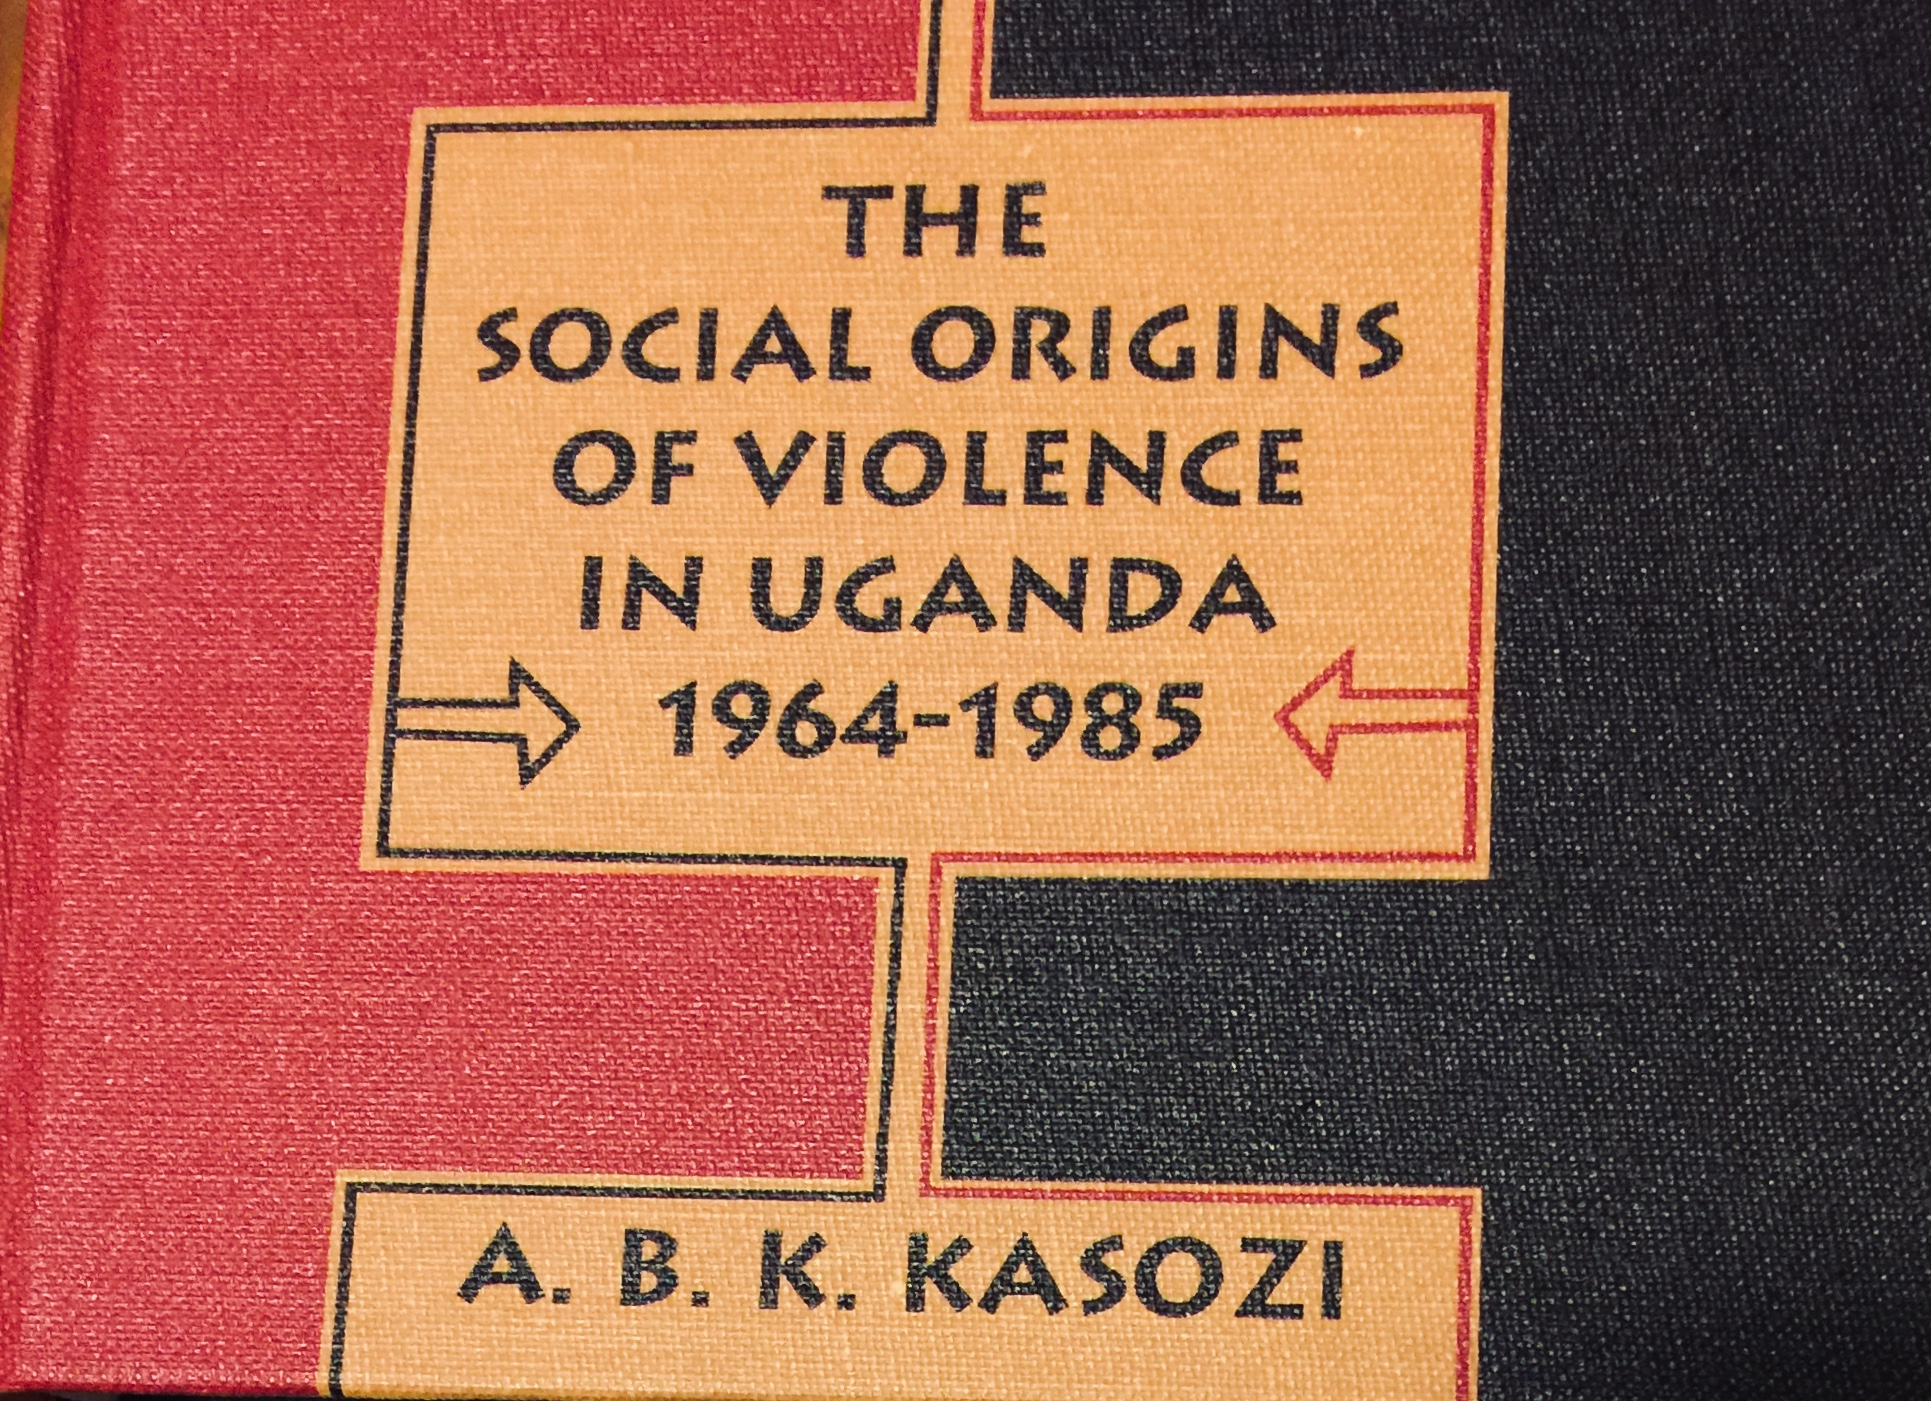 The Social Origins of Violence in Uganda, 1964-1985 – By A.B.K. Kasozi